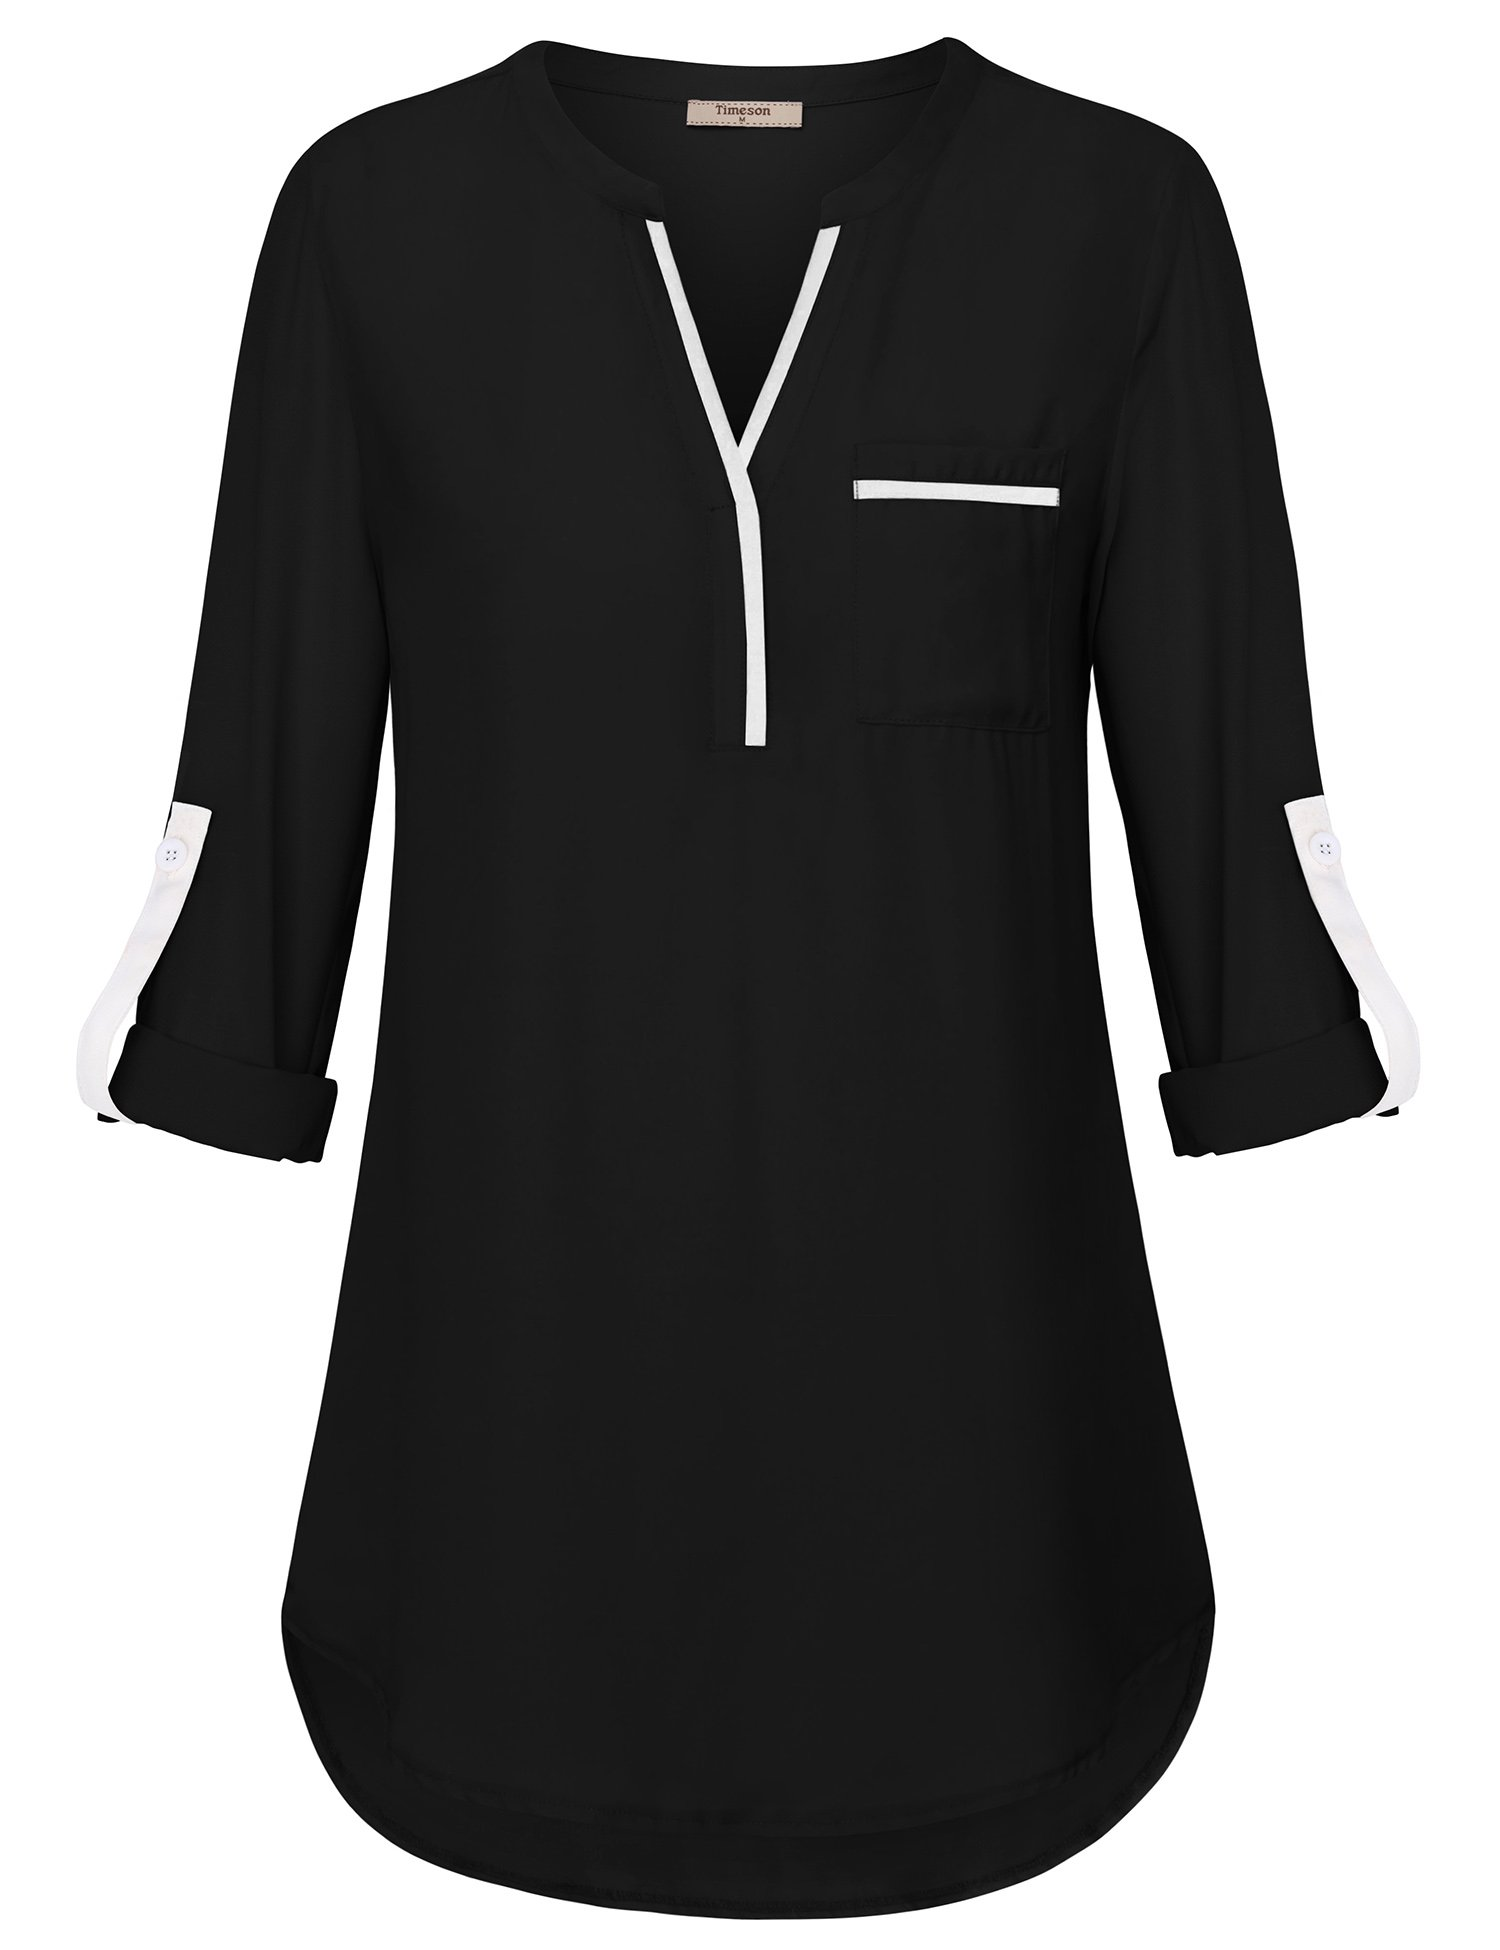 Timeson Tunic Blouses Women, Women's Henley V Neck Button Down Shirts Cuffed Sleeve Blouses Casual Fit Wear to Work Business Chiffon Womam Tunic Tops for Leggings Black Large